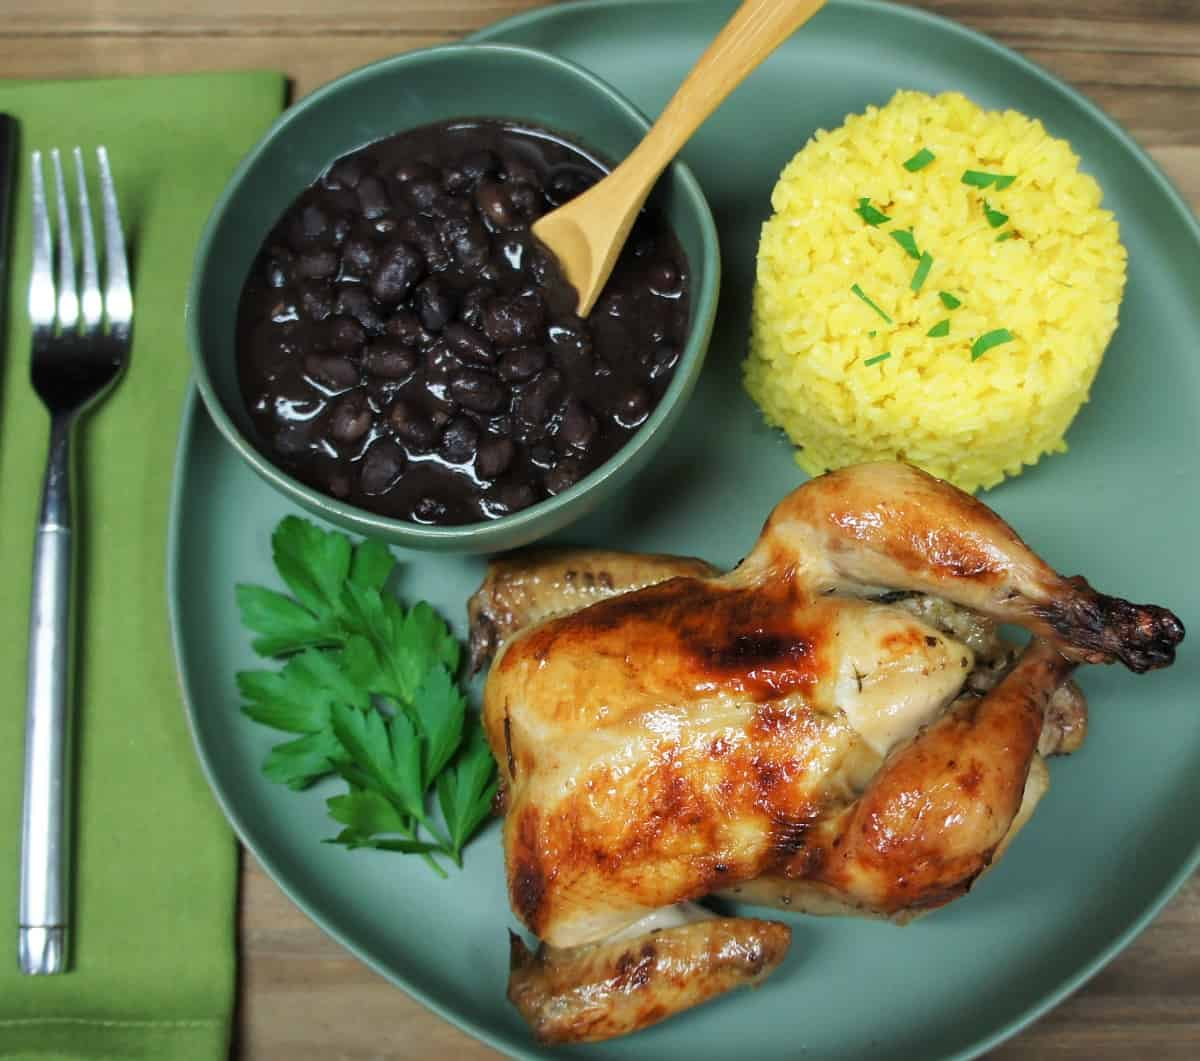 A whole Cornish hen served on a green plate with yellow rice and black beans.